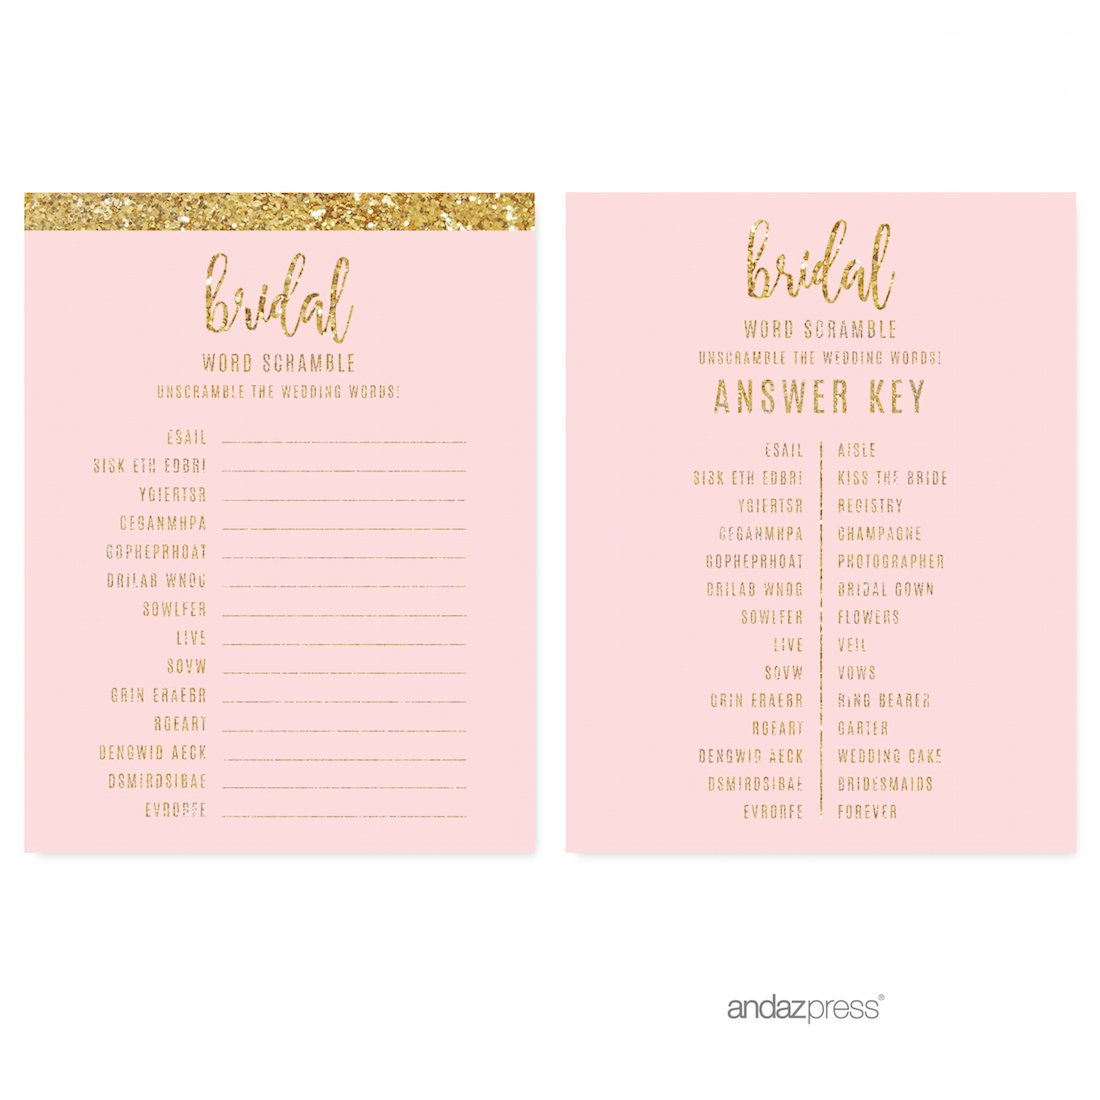 andaz press blush pink gold glitter print wedding collection wedding word scramble bridal shower game